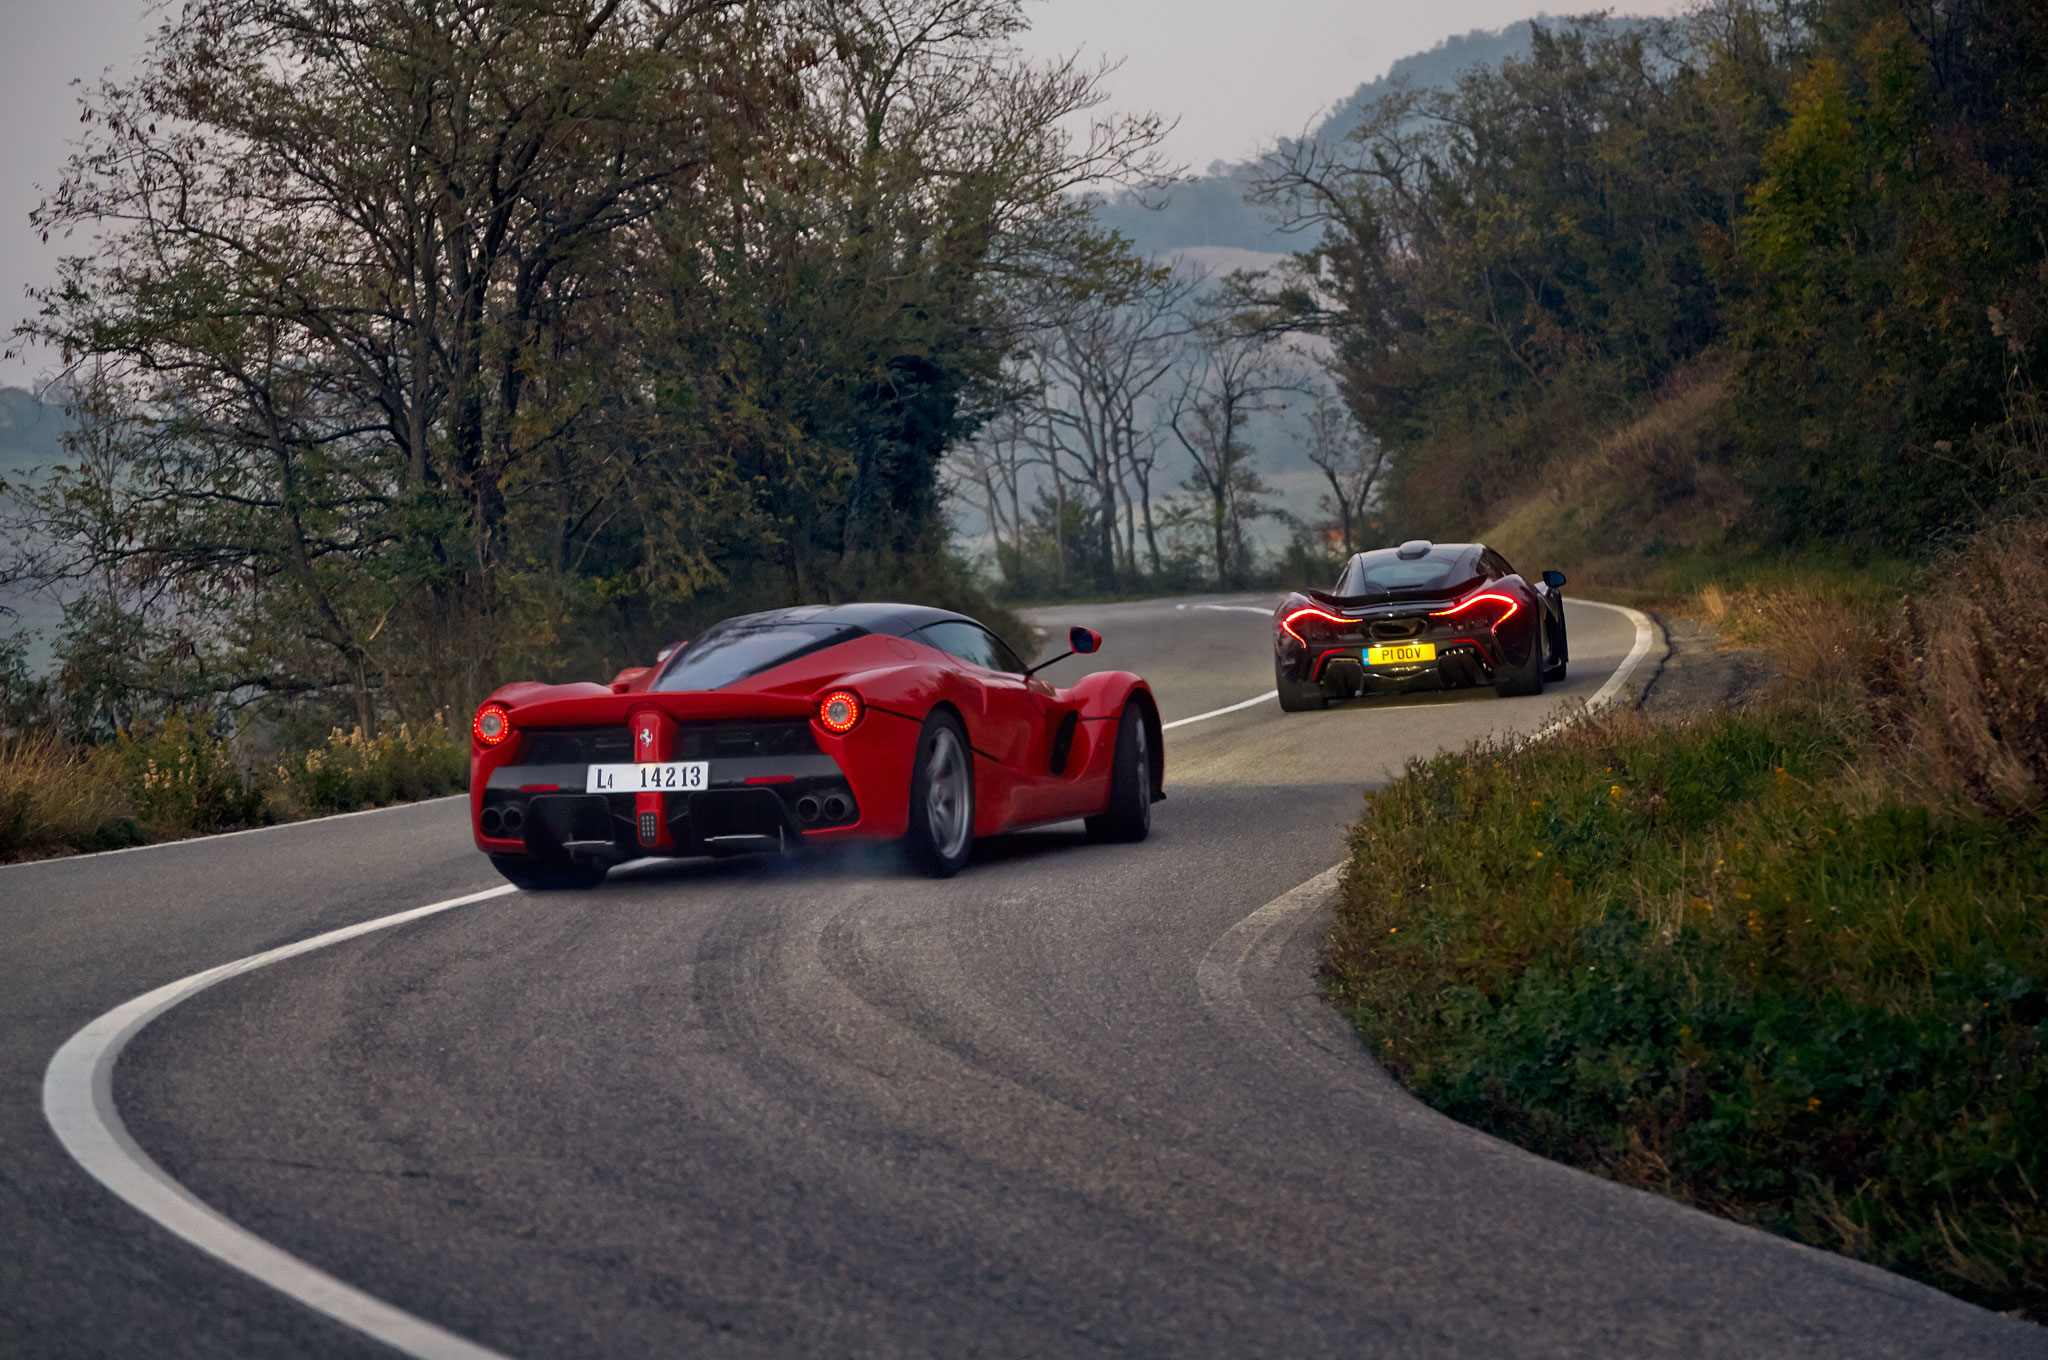 mclaren p1 vs laferrari. show more mclaren p1 vs laferrari